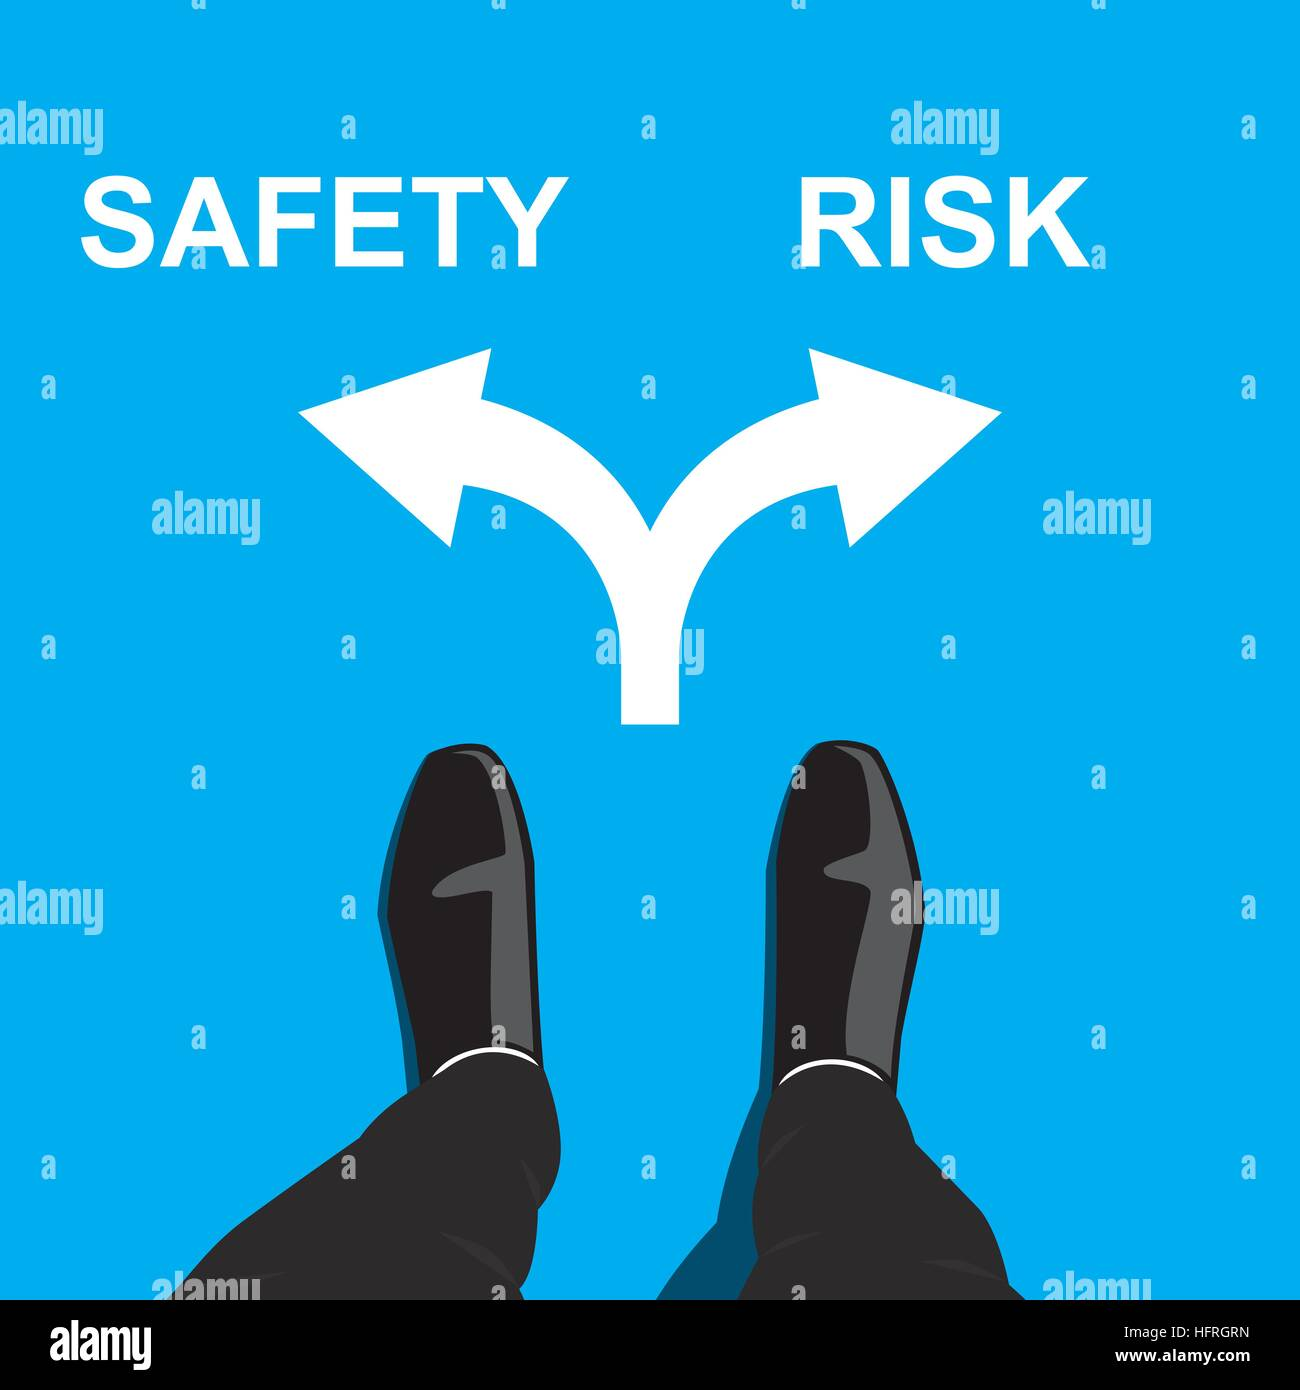 Businessman standing at the crossroad making decision - safety or risk - Stock Image